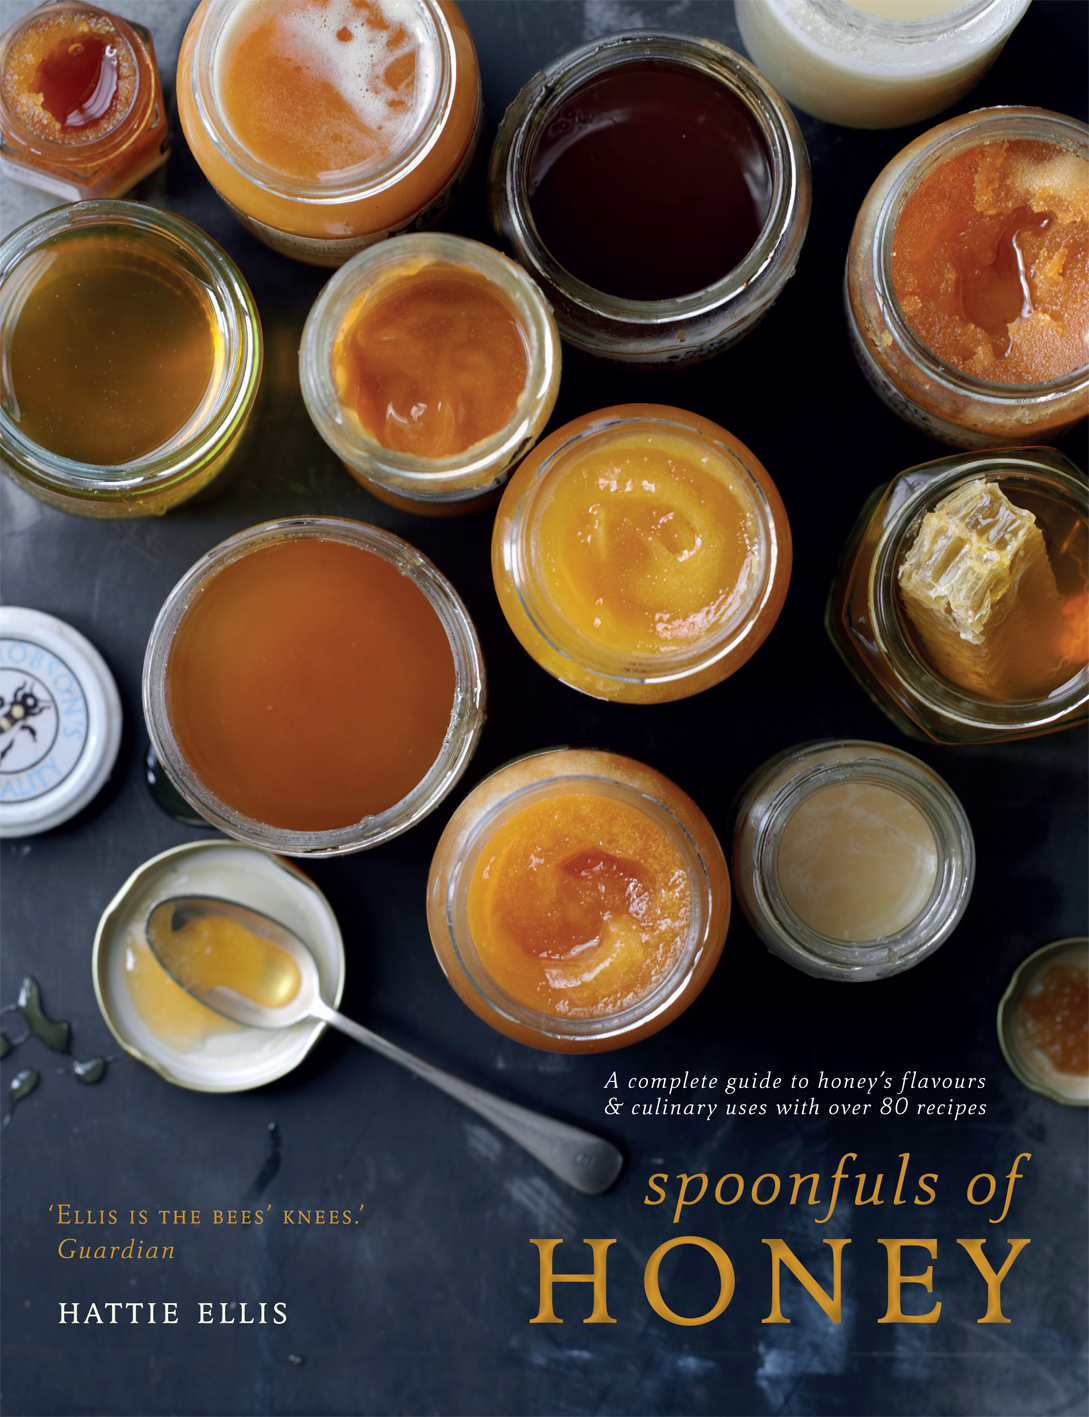 Review of Spoonfuls of Honey by Hattie Ellis (Pavilion Books)